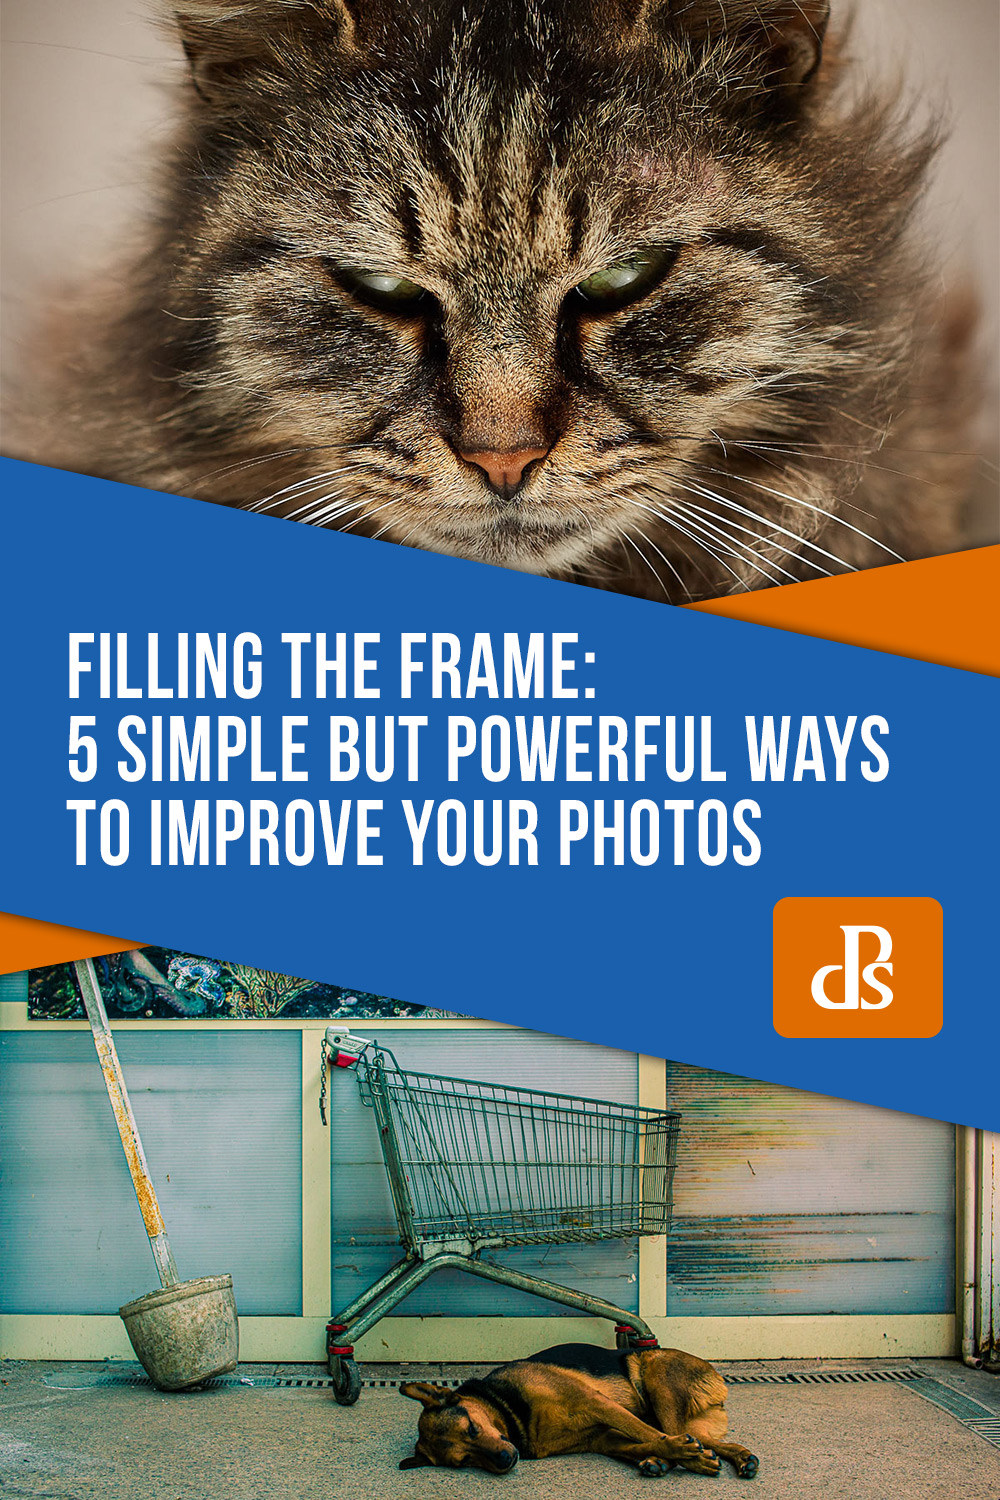 ways-to-improve-your-photos